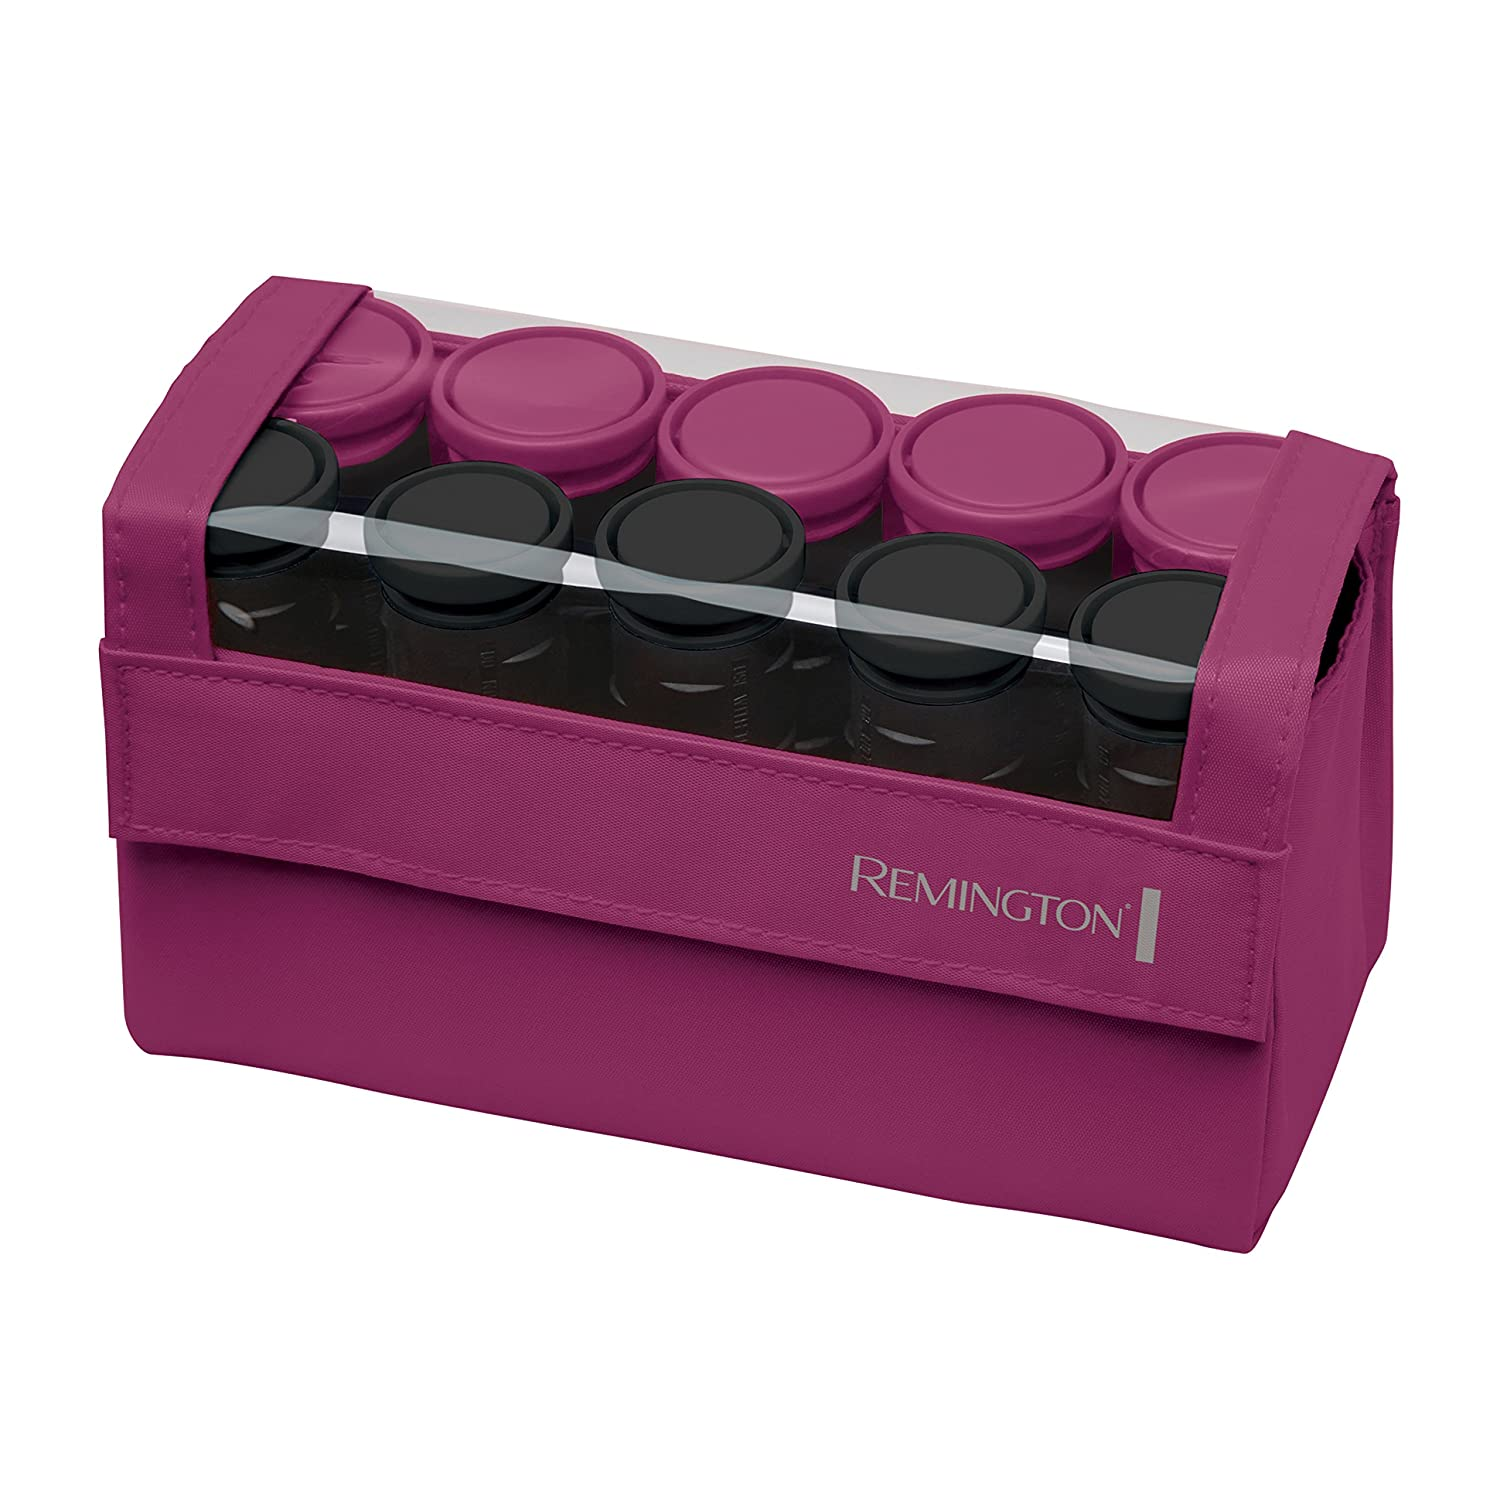 Remington H1015 Compact Ceramic Hair Rollers